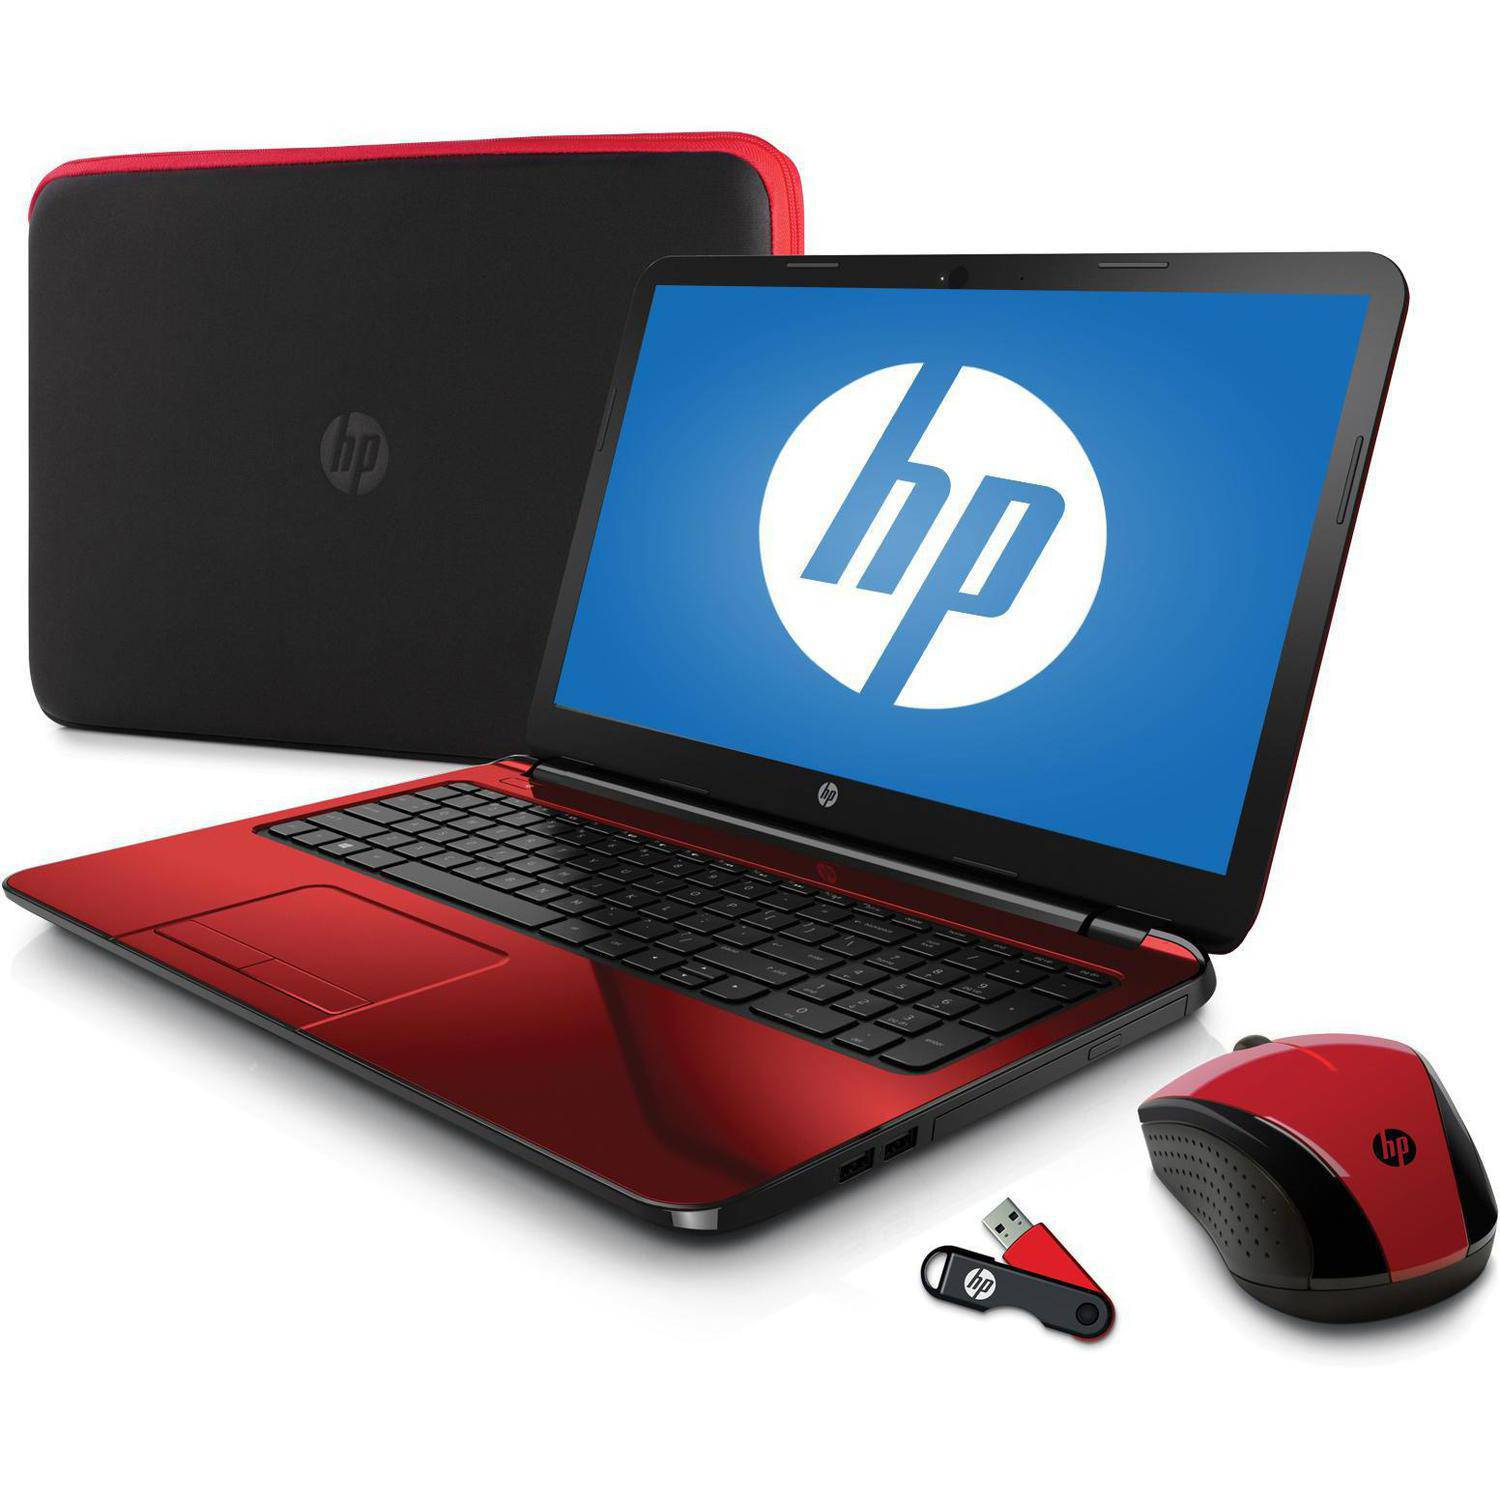 "Refurbished HP Flyer Red 15.6"" 15-G227WM Laptop PC Bundle with AMD Quad-Core A6-5200 Processor, 4GB Memory, 500GB Hard Drive and Windows 8.1  (Free Windows 10 Upgrade before July 29, 2016)"